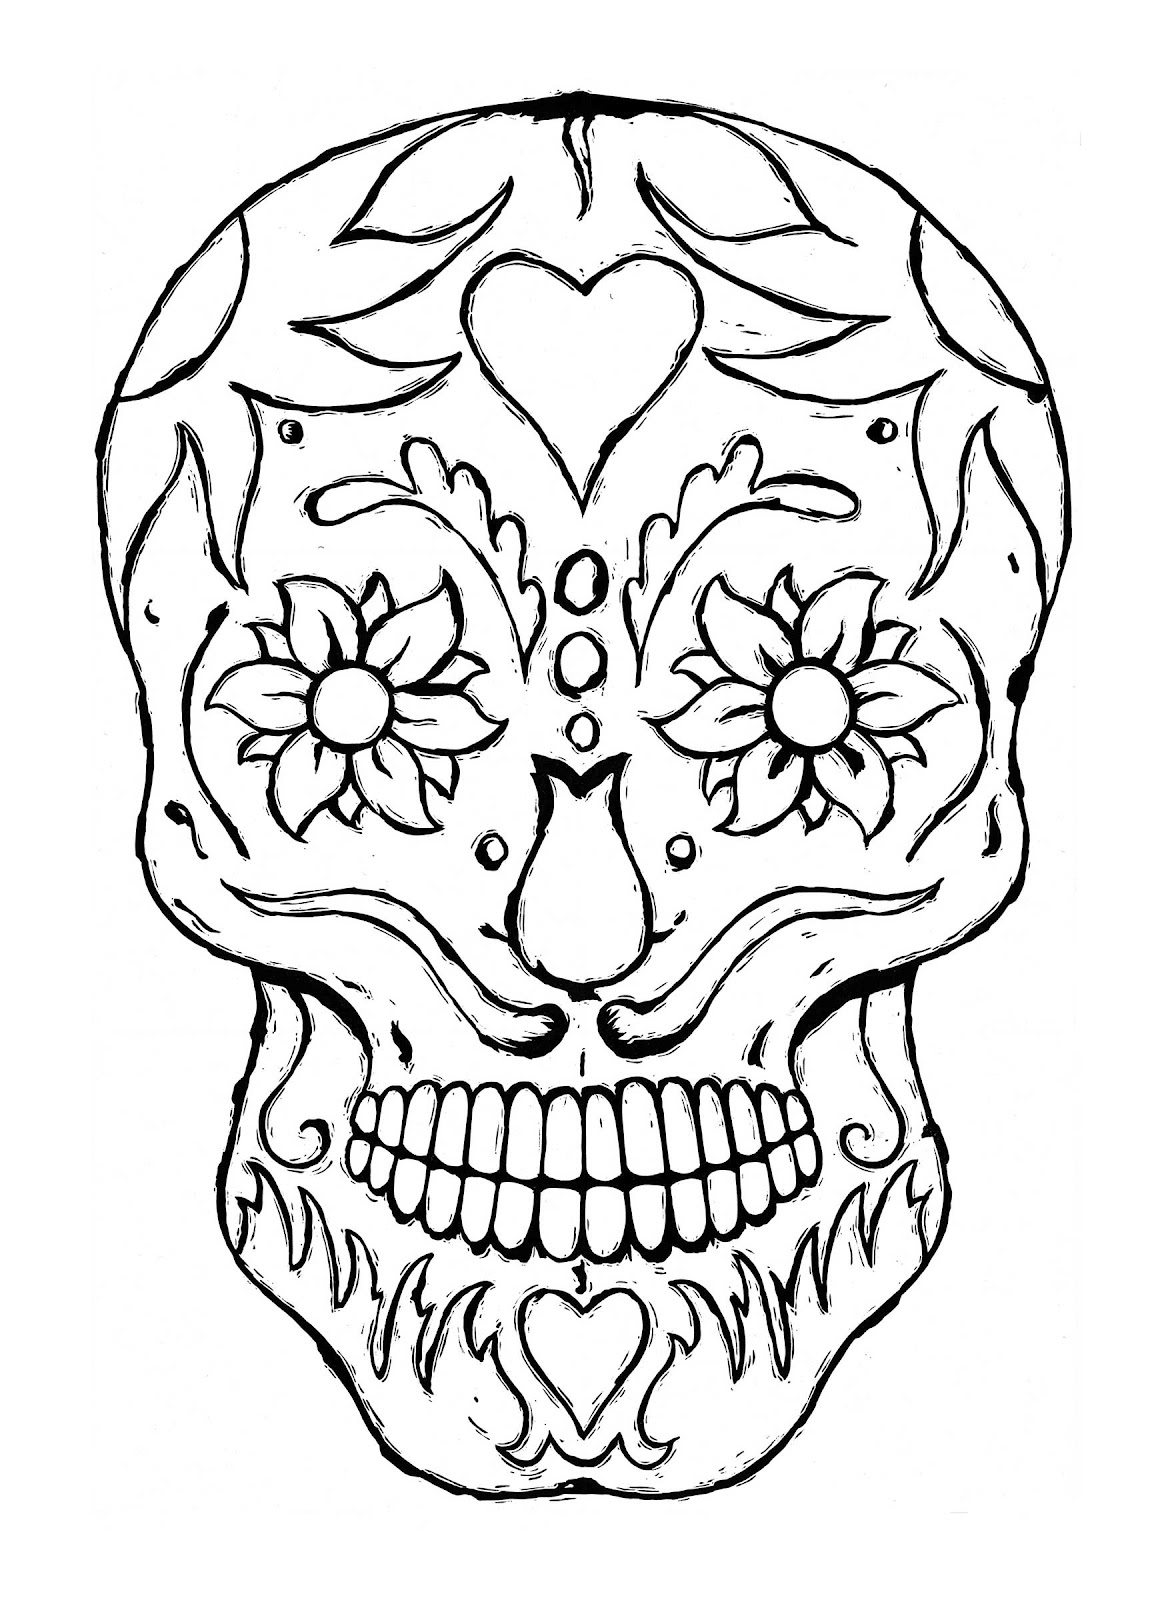 cool halloween skull coloring pages - photo#17